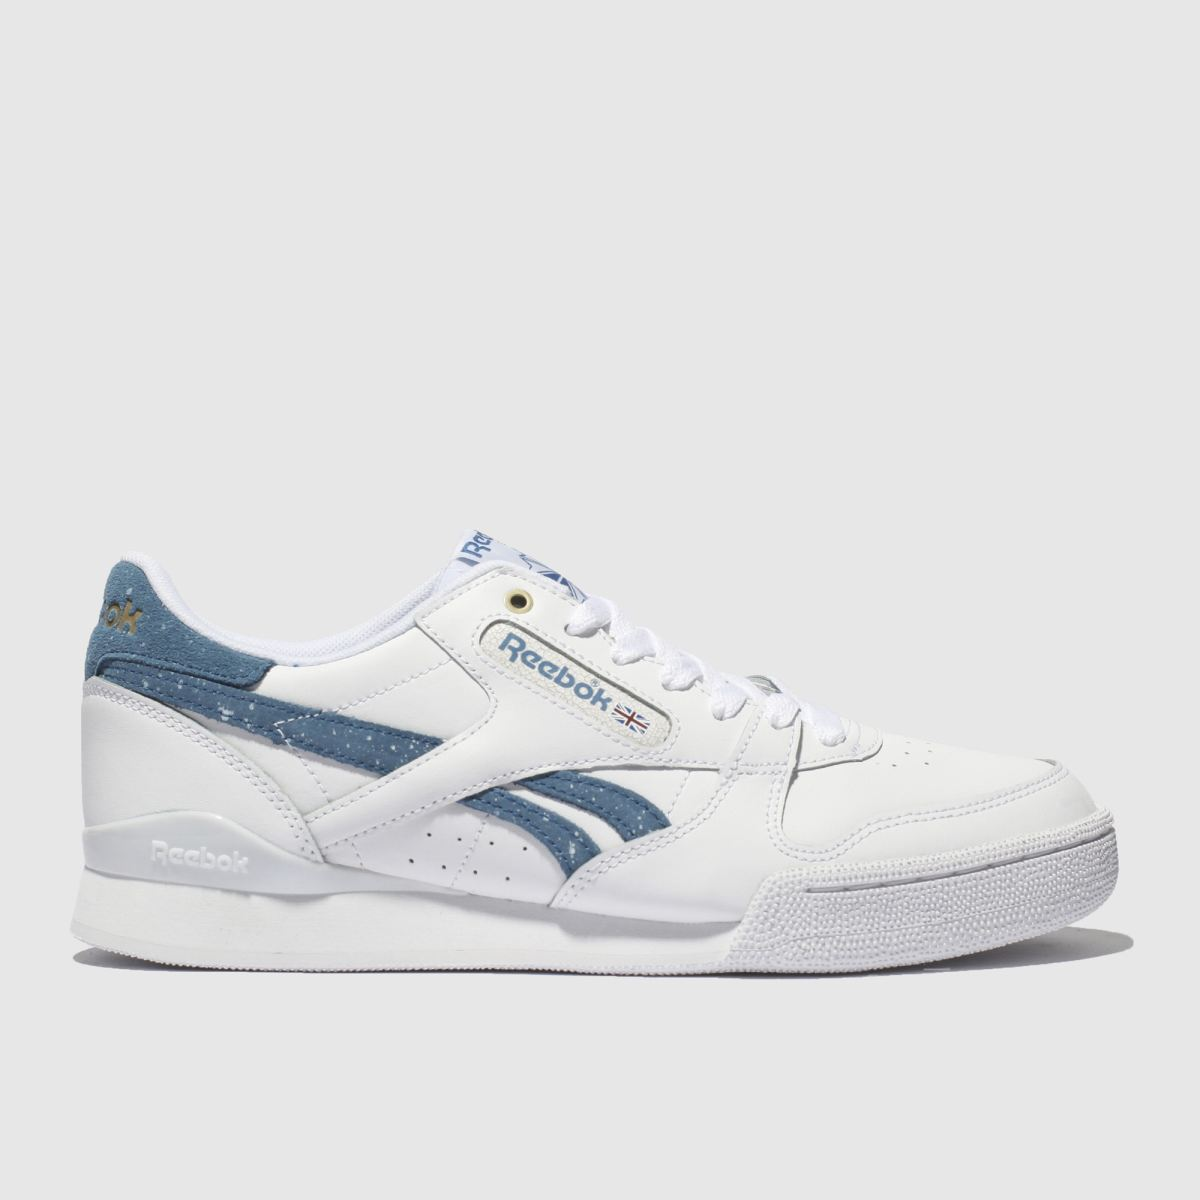 Reebok White & Blue Phase 1 Pro Trainers